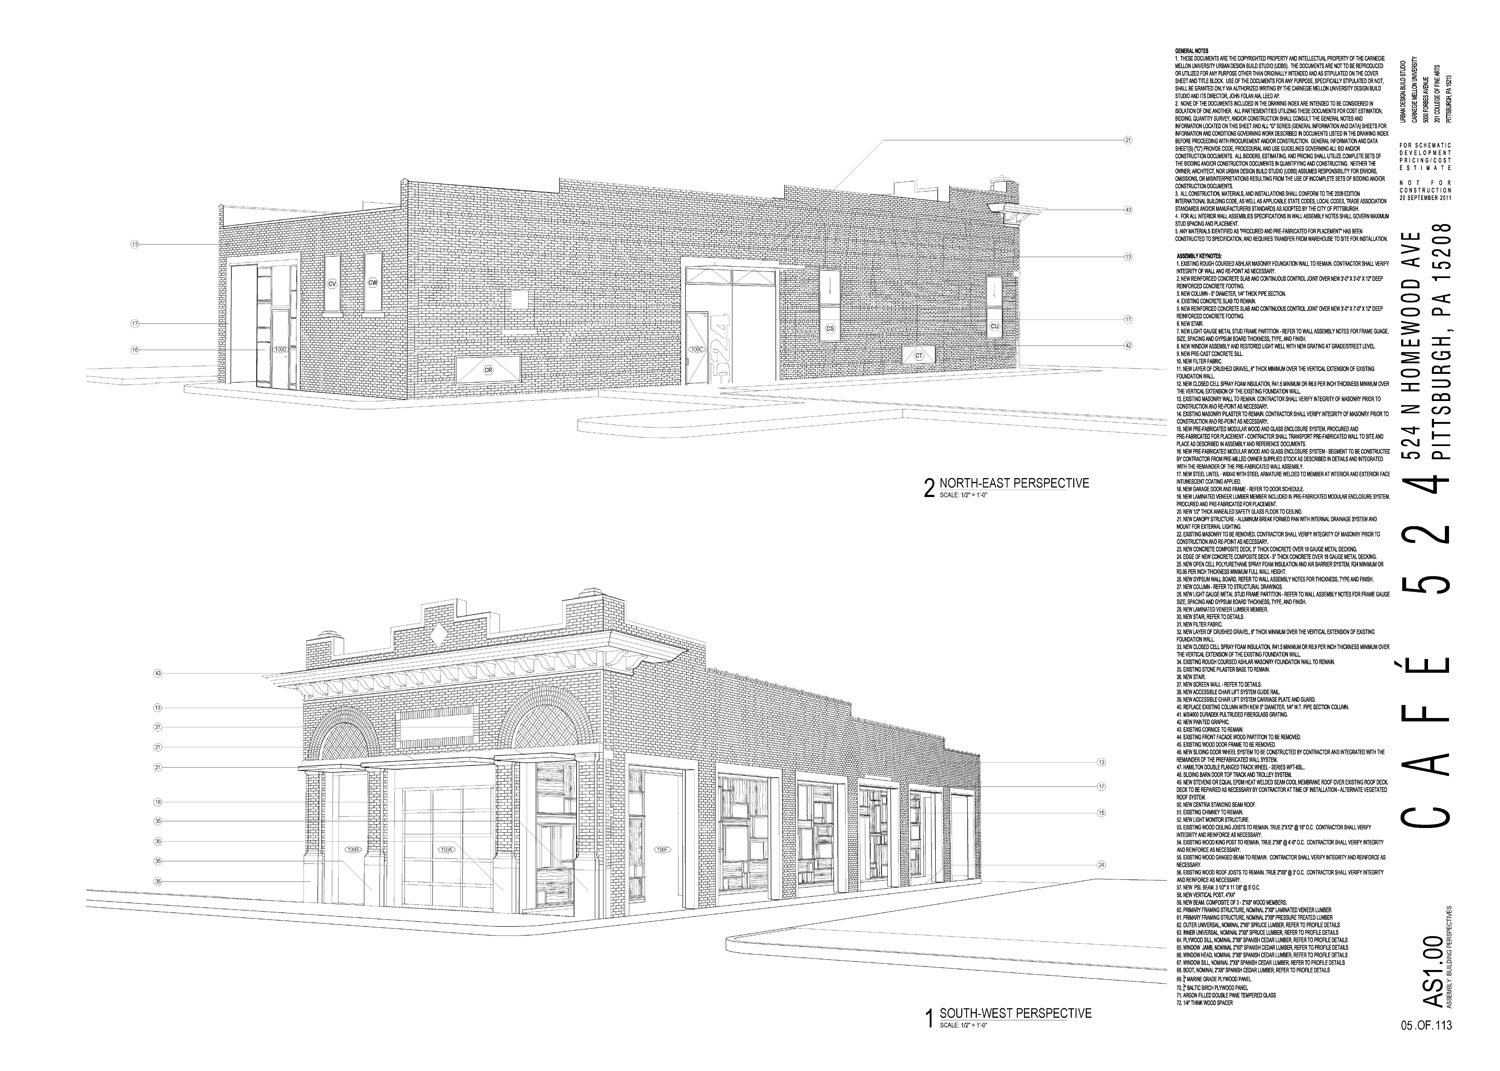 Assembly perspective excerpts from construction document set.